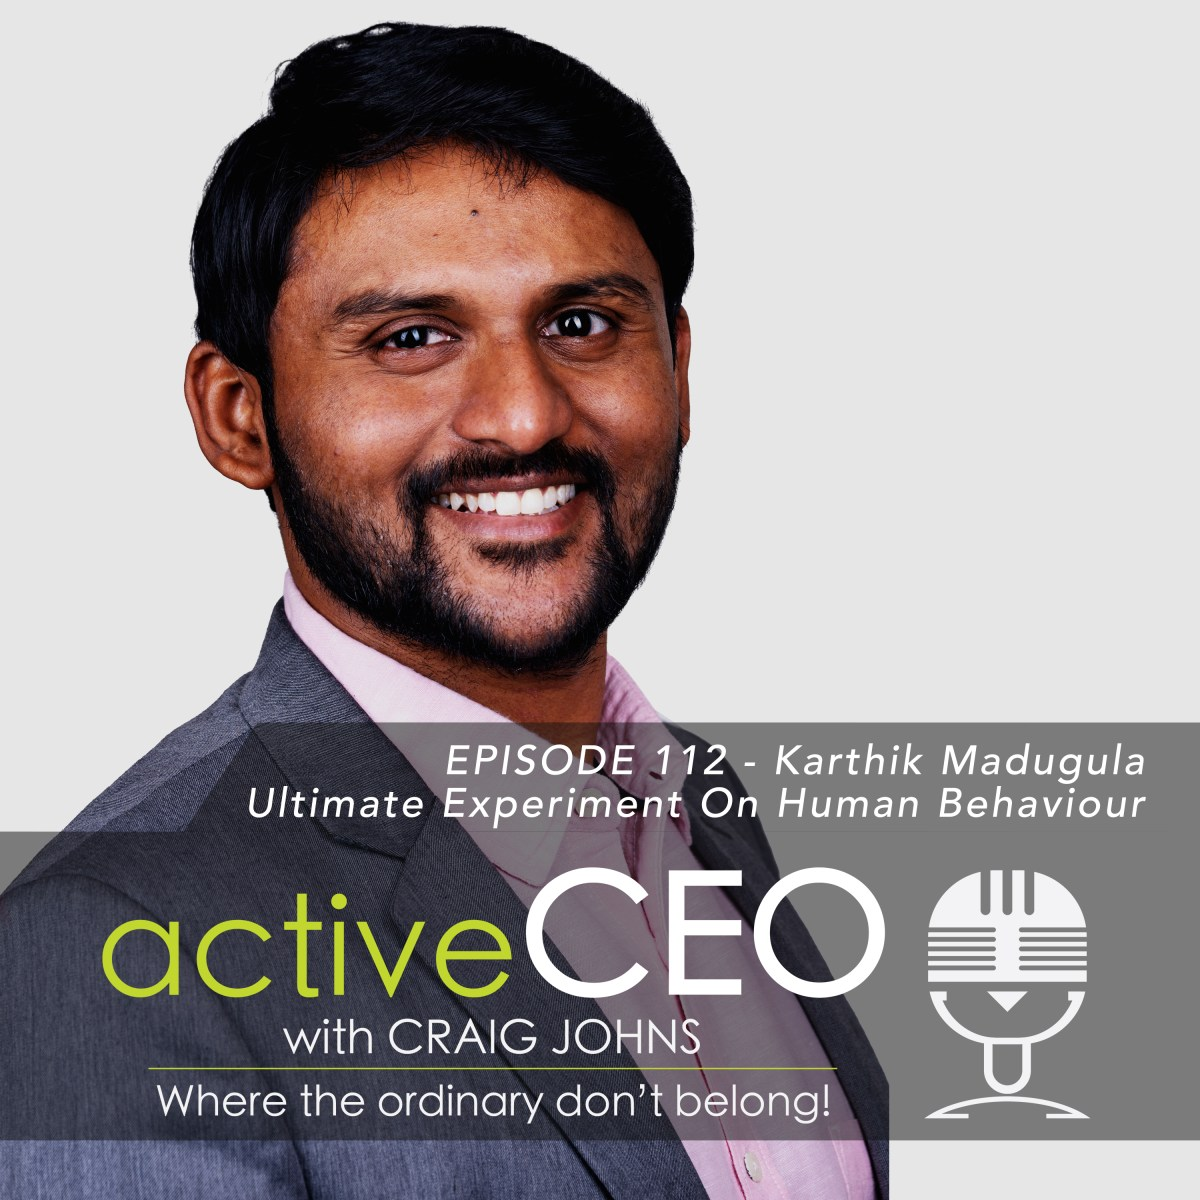 active CEO Podcast with Craig Johns Karthik Madugula Ultimate Experiment On Human Behaviour